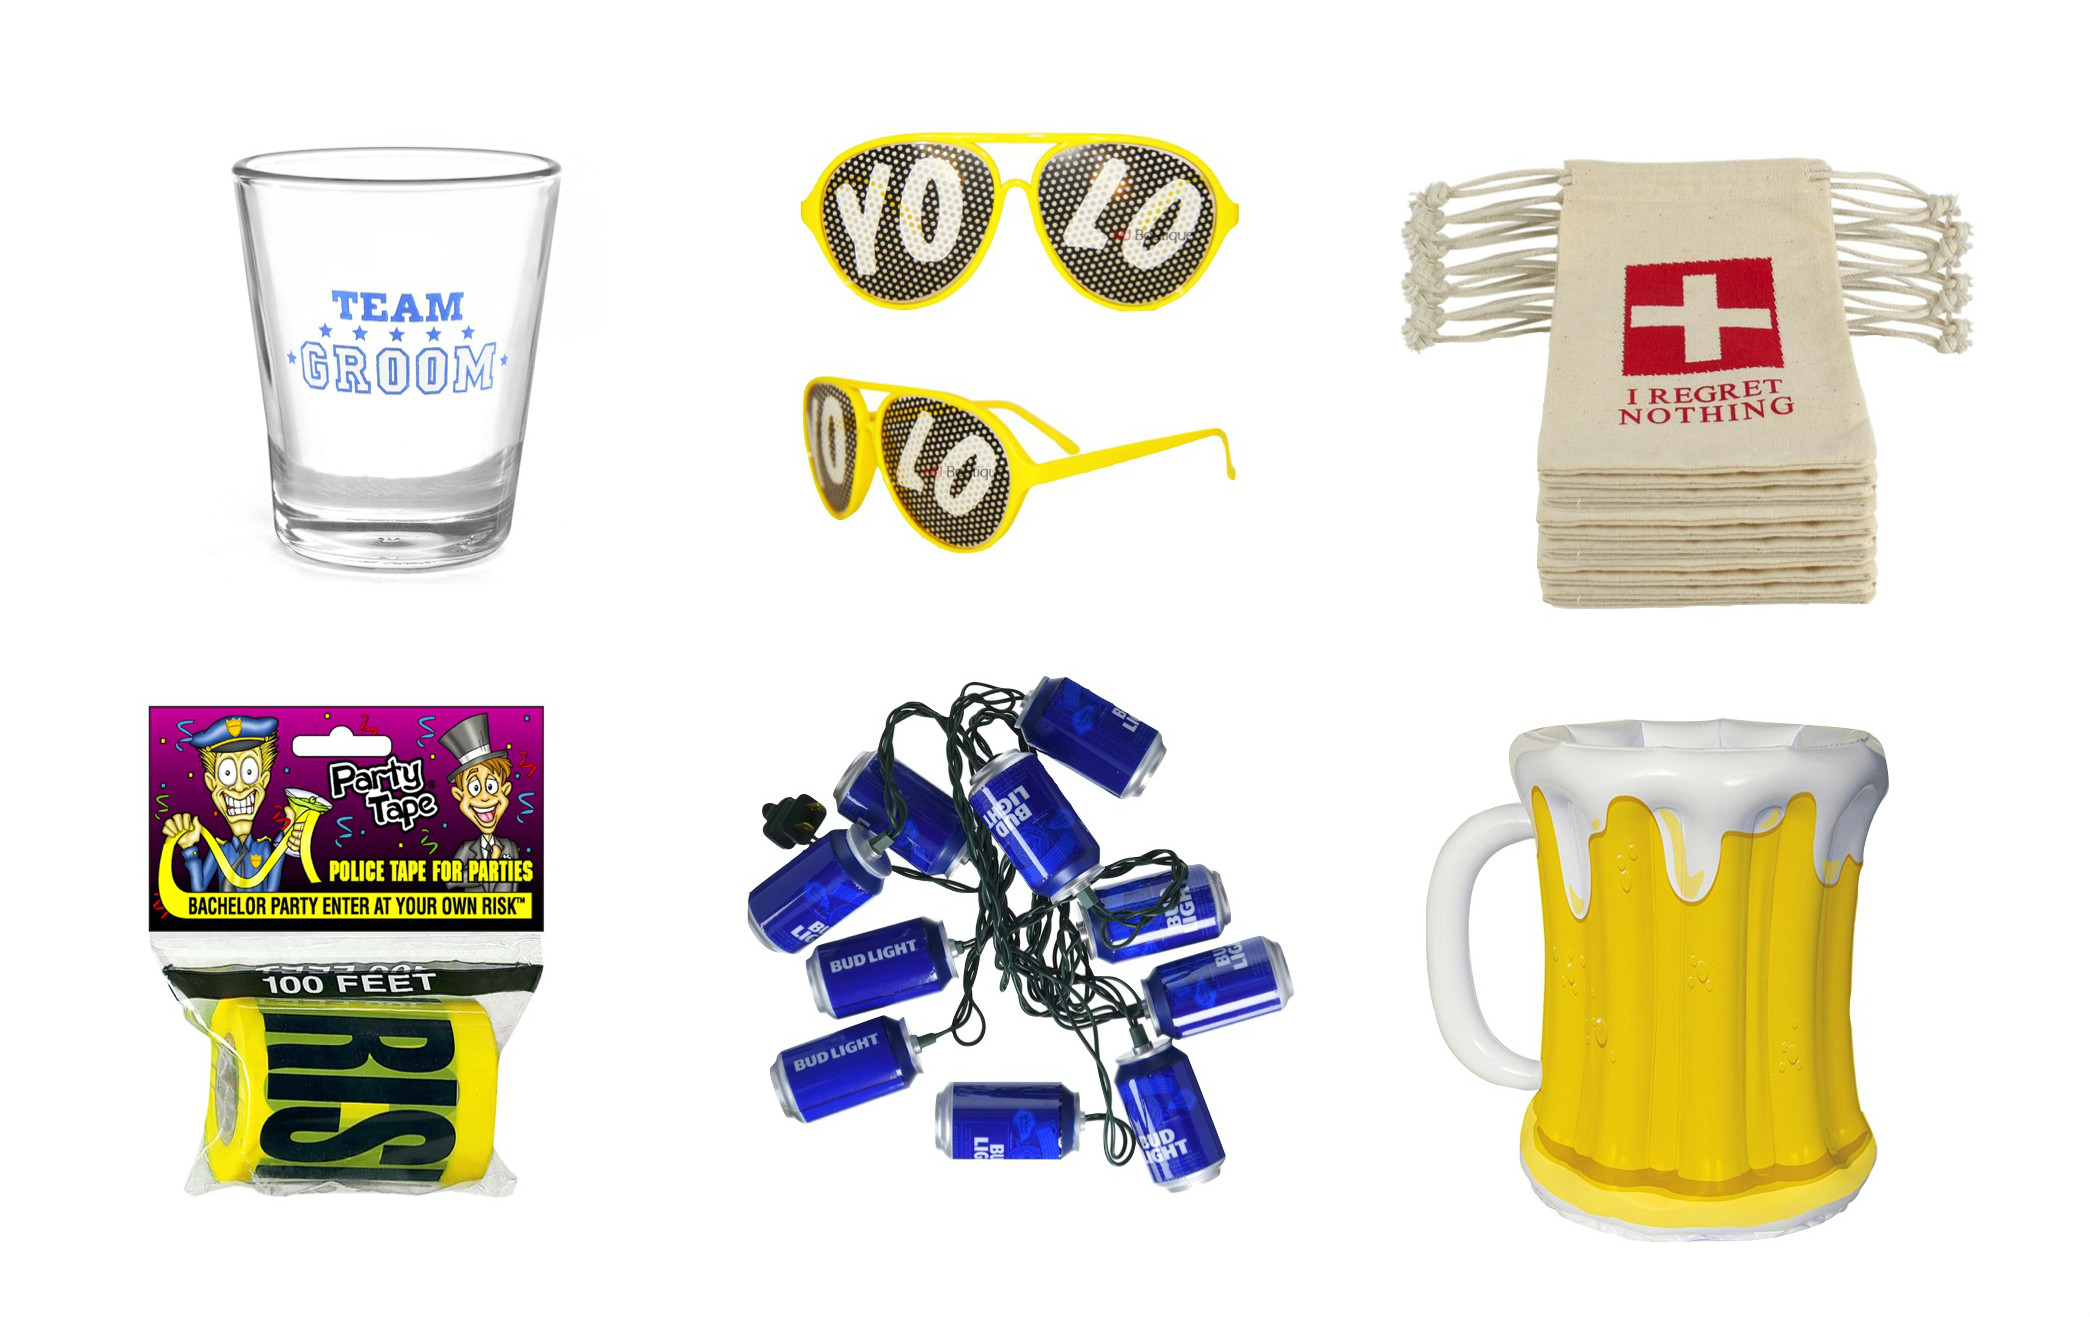 bachelor party decorations, bachelor party ideas, bachelor party supplies, bachelor party favors, bachelor party